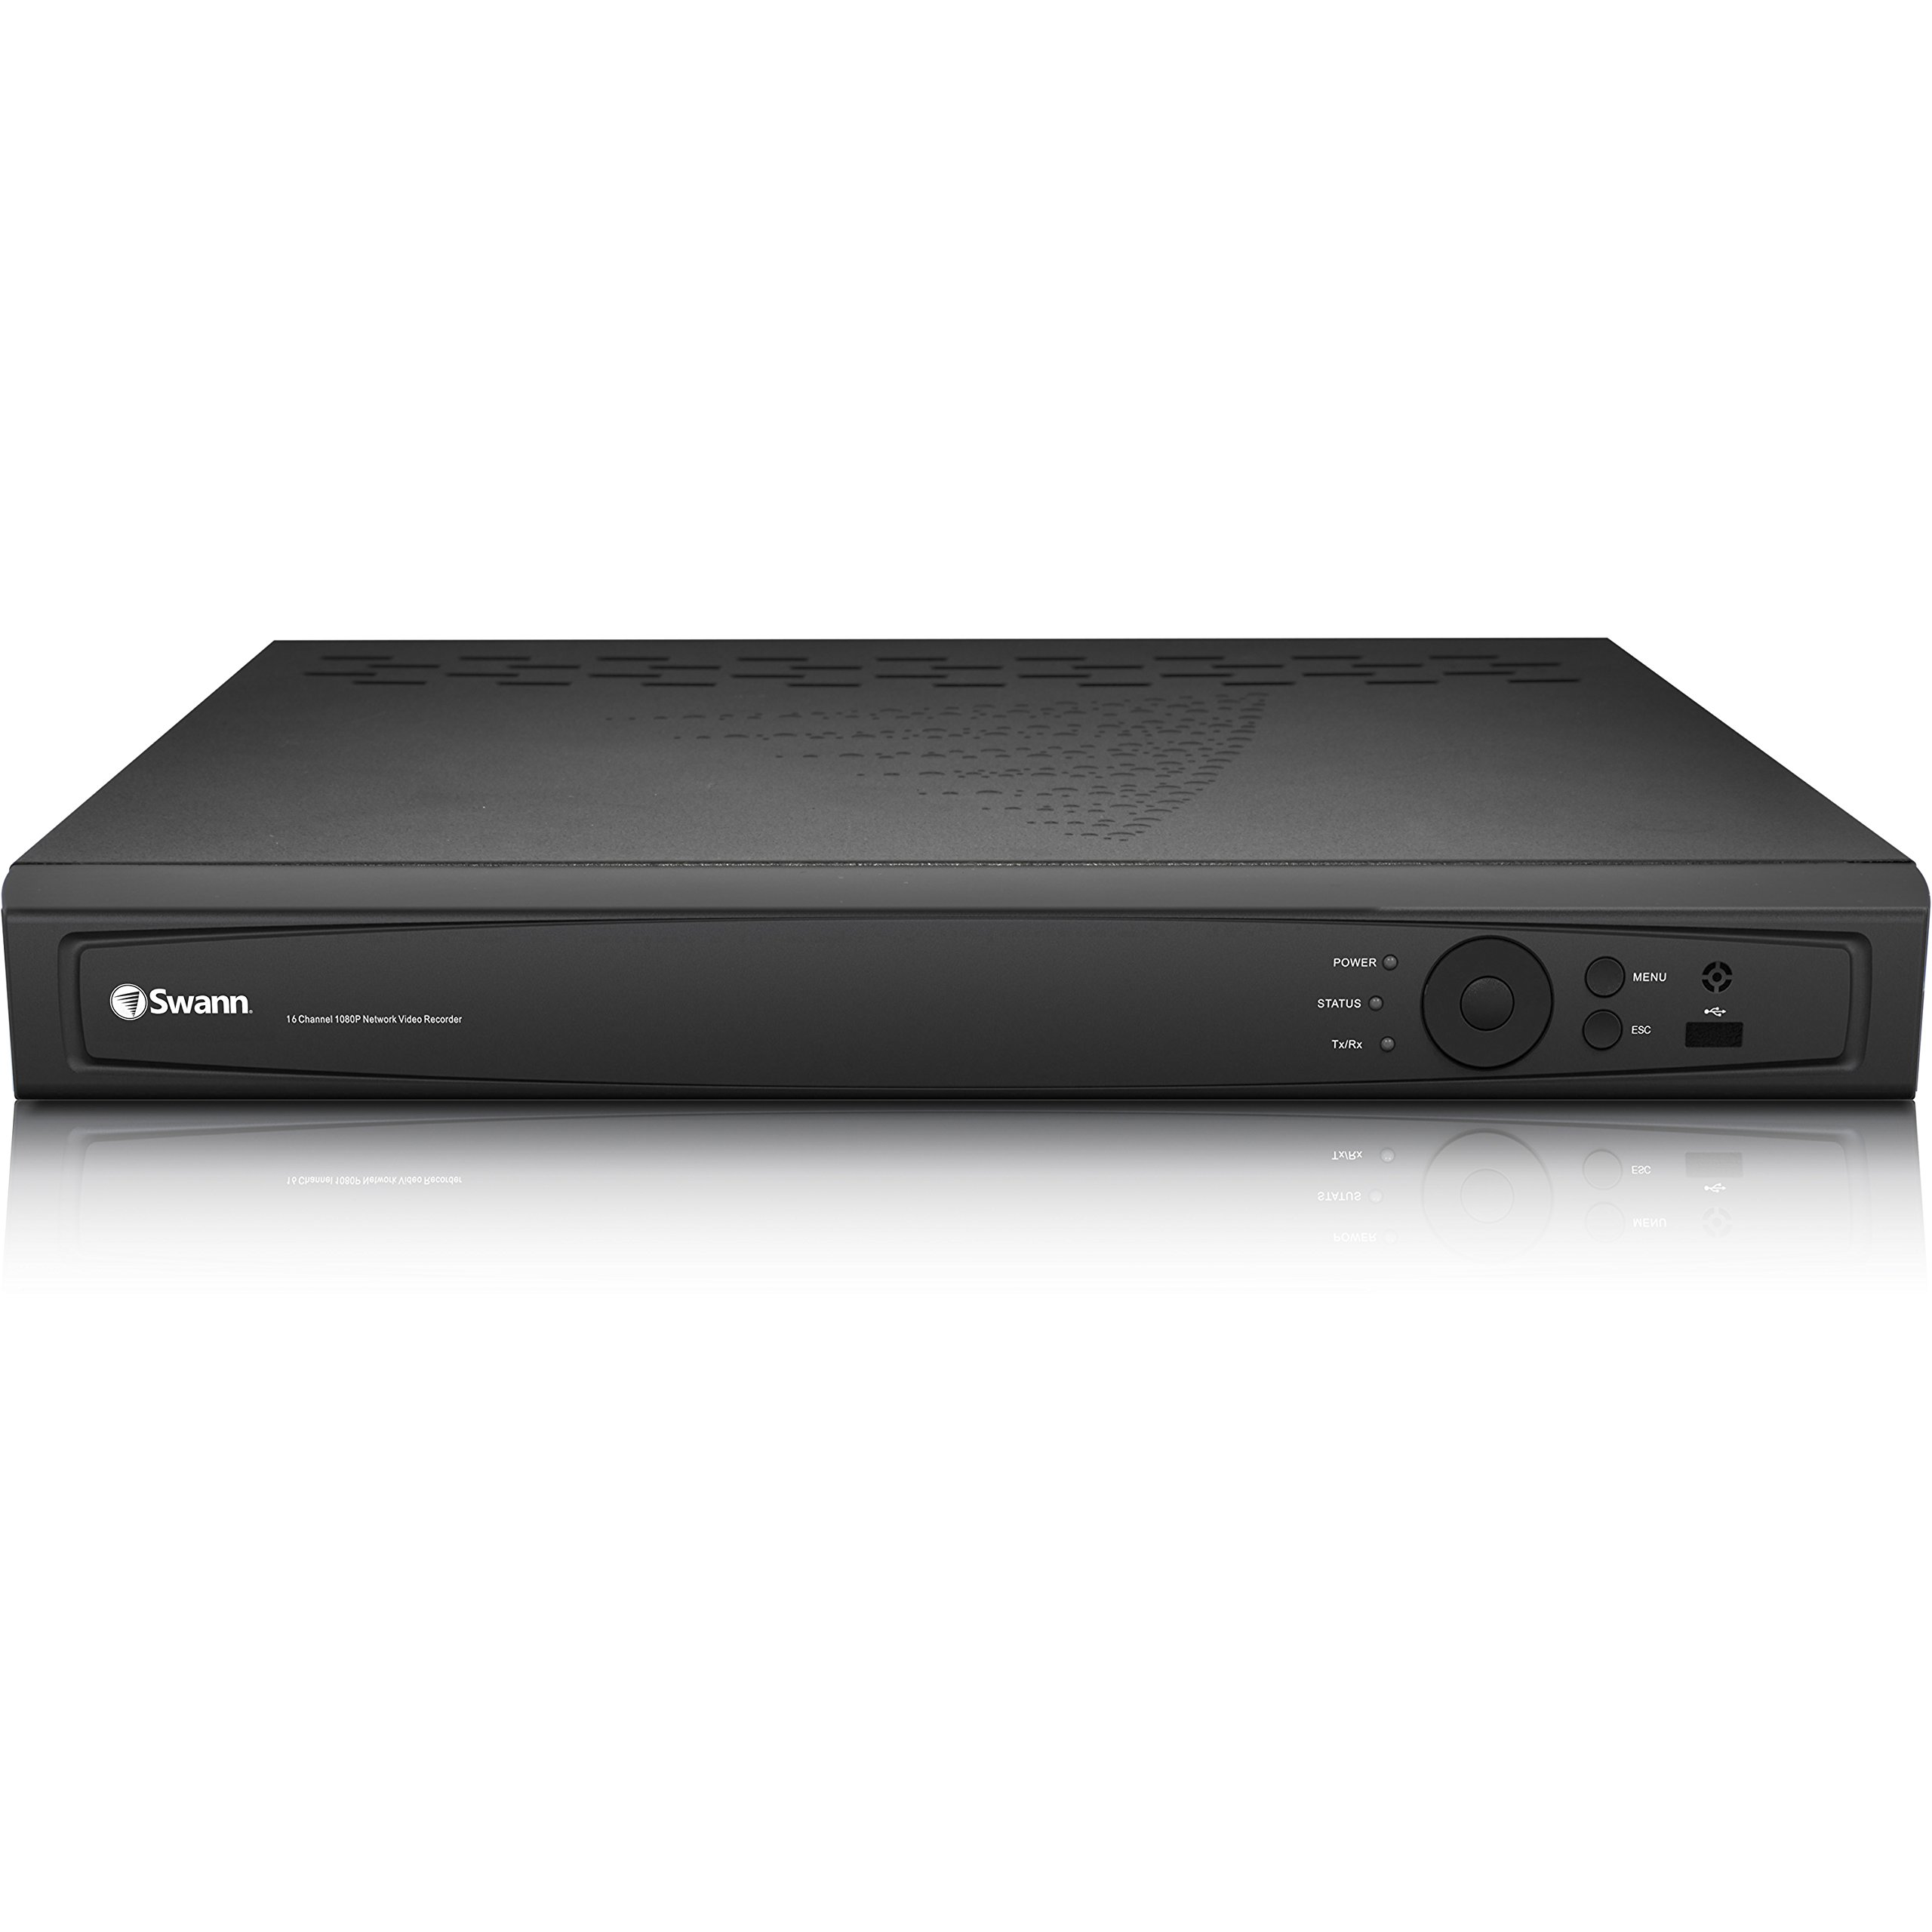 Swann 16 Channel 3MP HD Home Security NVR, 3TB HDD, Swann 7090 Series (Expand with Swann 1HD-835 Cameras) - (CONVR-B163MP-US)